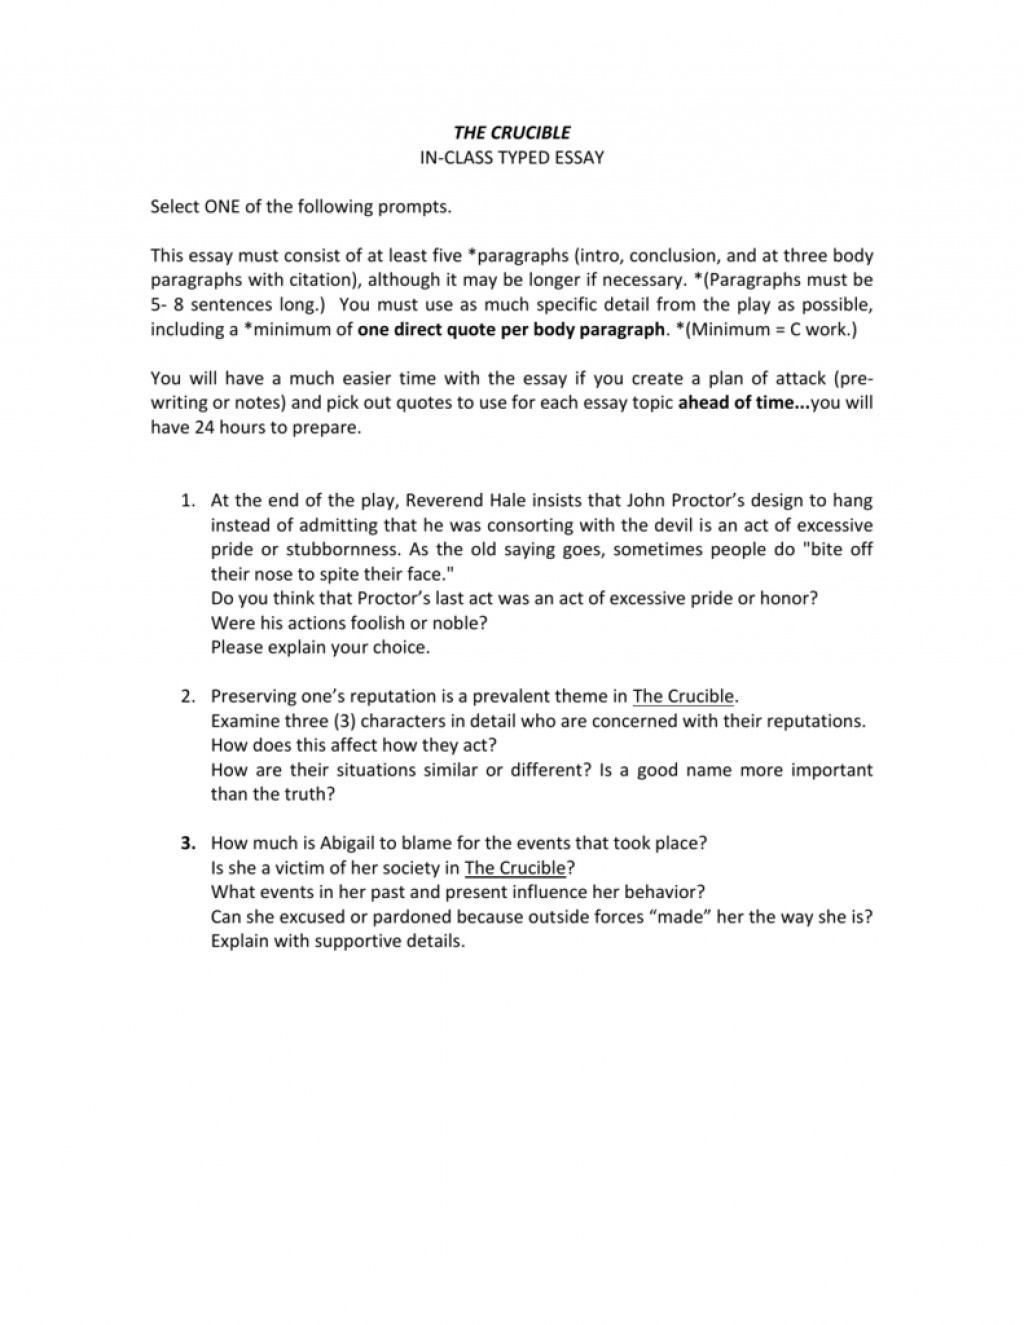 002 Essay Example The Crucible Topics 008038869 1 Shocking Topic Sentences Analytical Writing Prompts Large